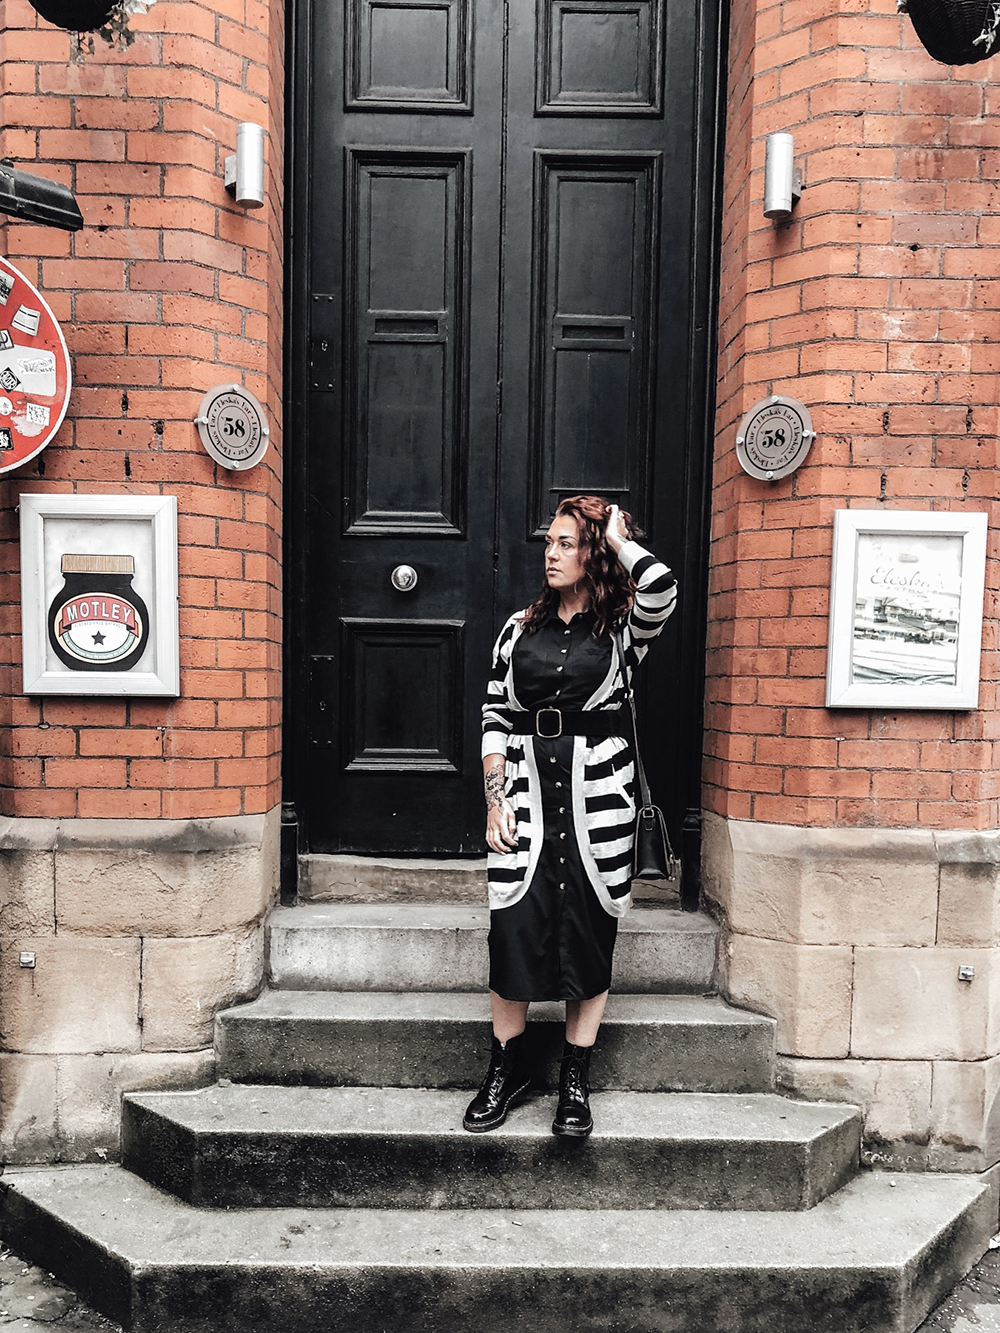 Black & grey, all day! Plus how to style Dr Martens #drmartens #dresses #stripes #casualoutfit #drmartenoutfit #thismamastyle #mumfashion #momfashion #momstyle #mumstyle